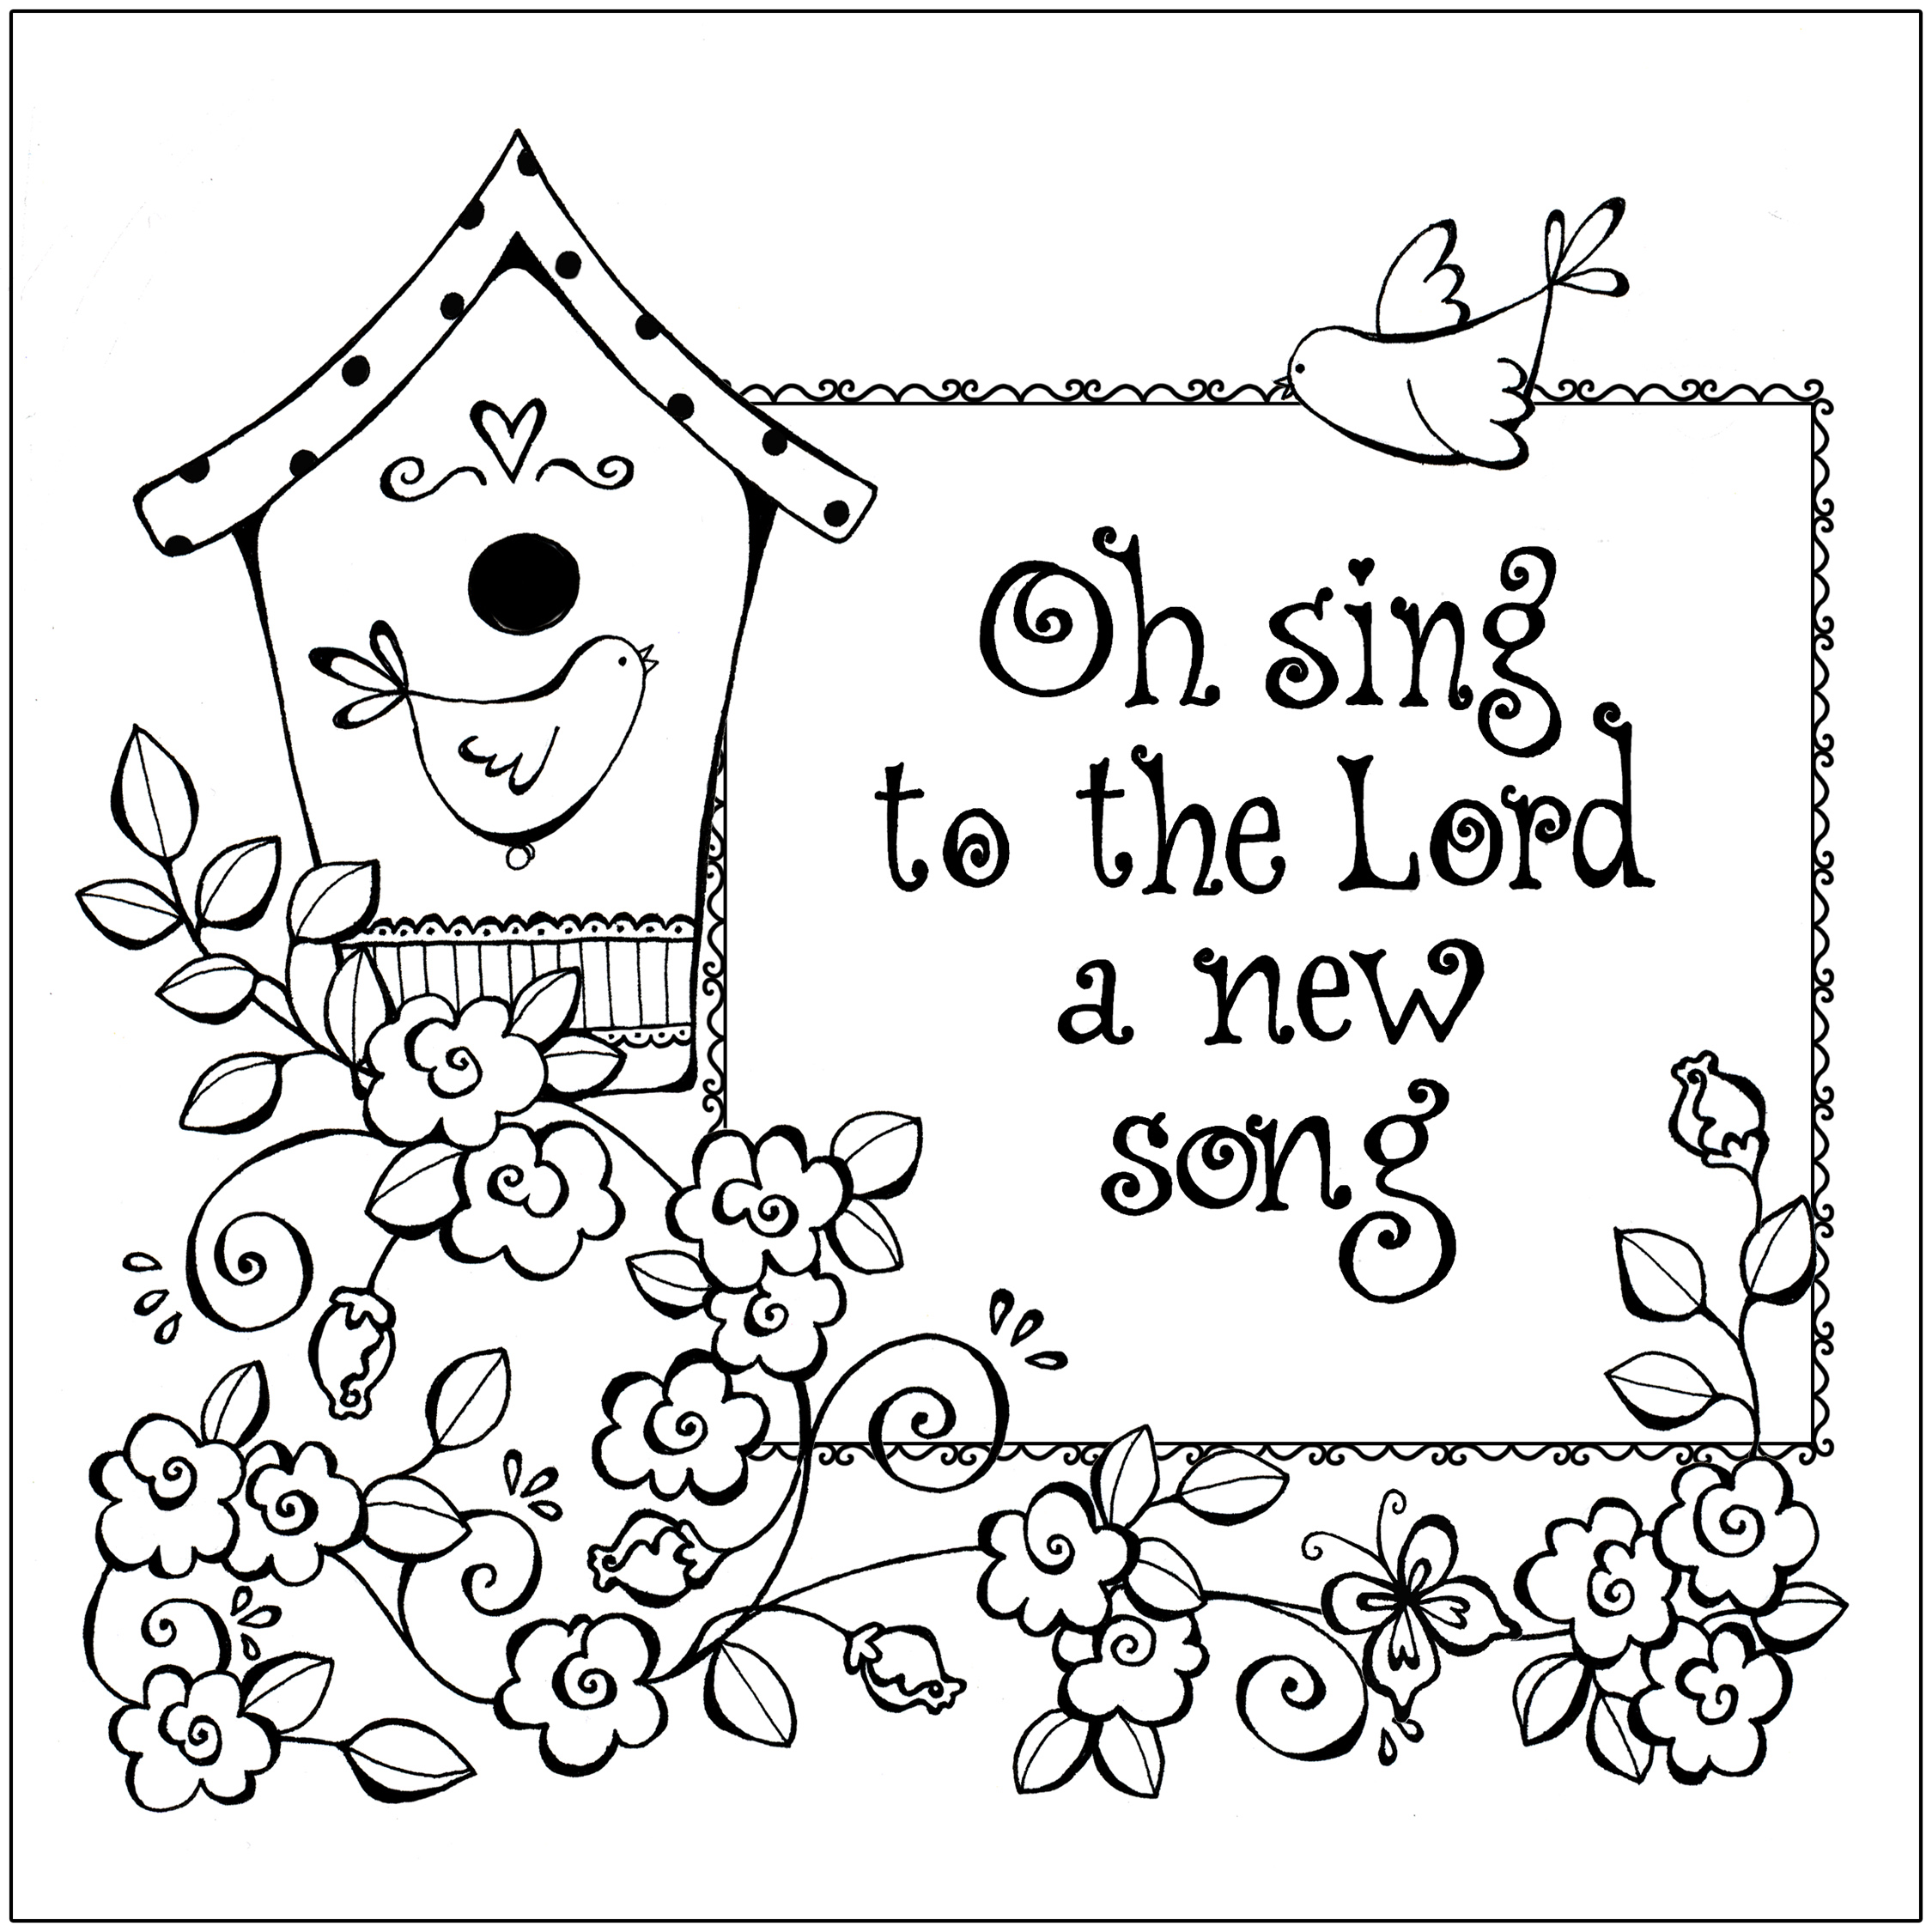 christian coloring page printable images - Christian Coloring Pages Free